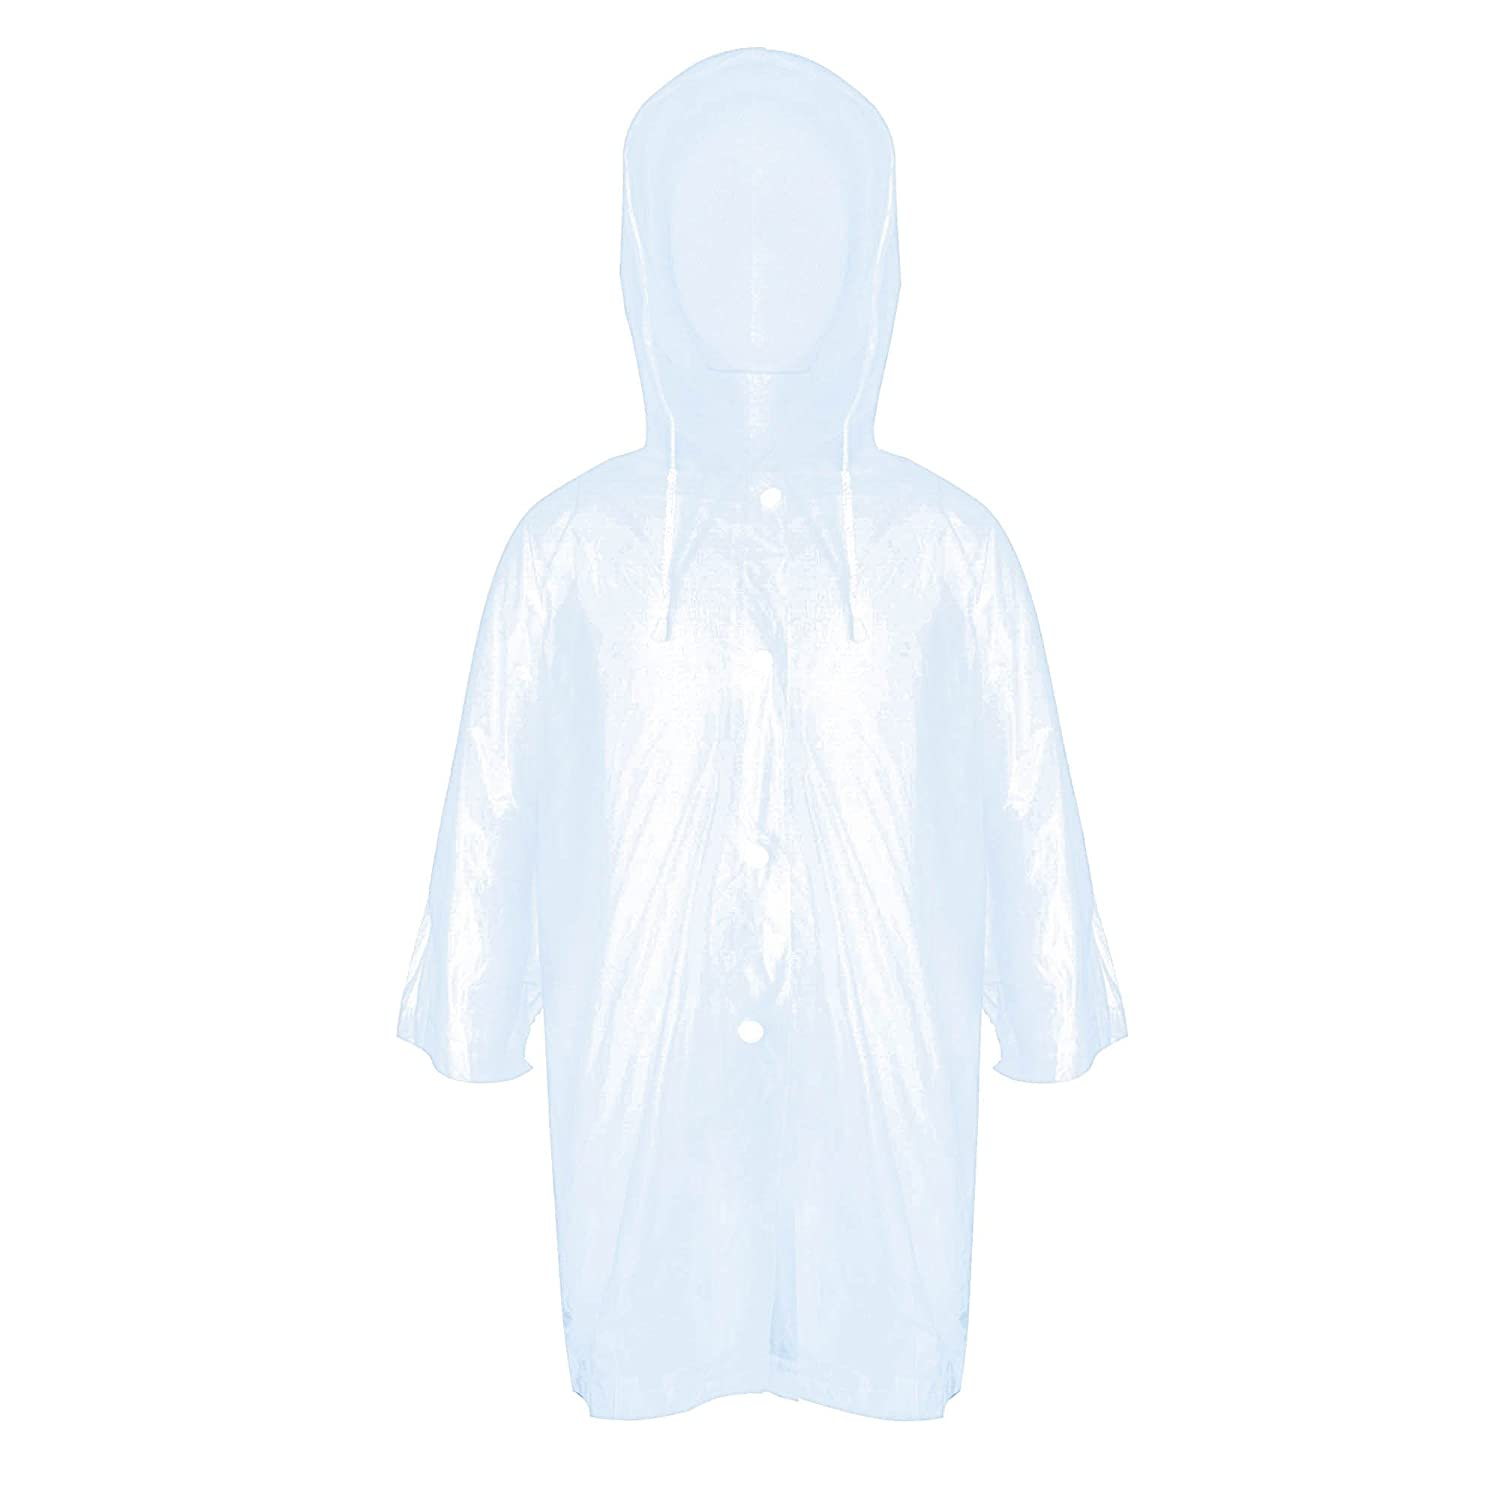 ZDHGLOBAL ZDH Kids Children Rain Poncho Raincoat Portable With Hoods and Sleeves